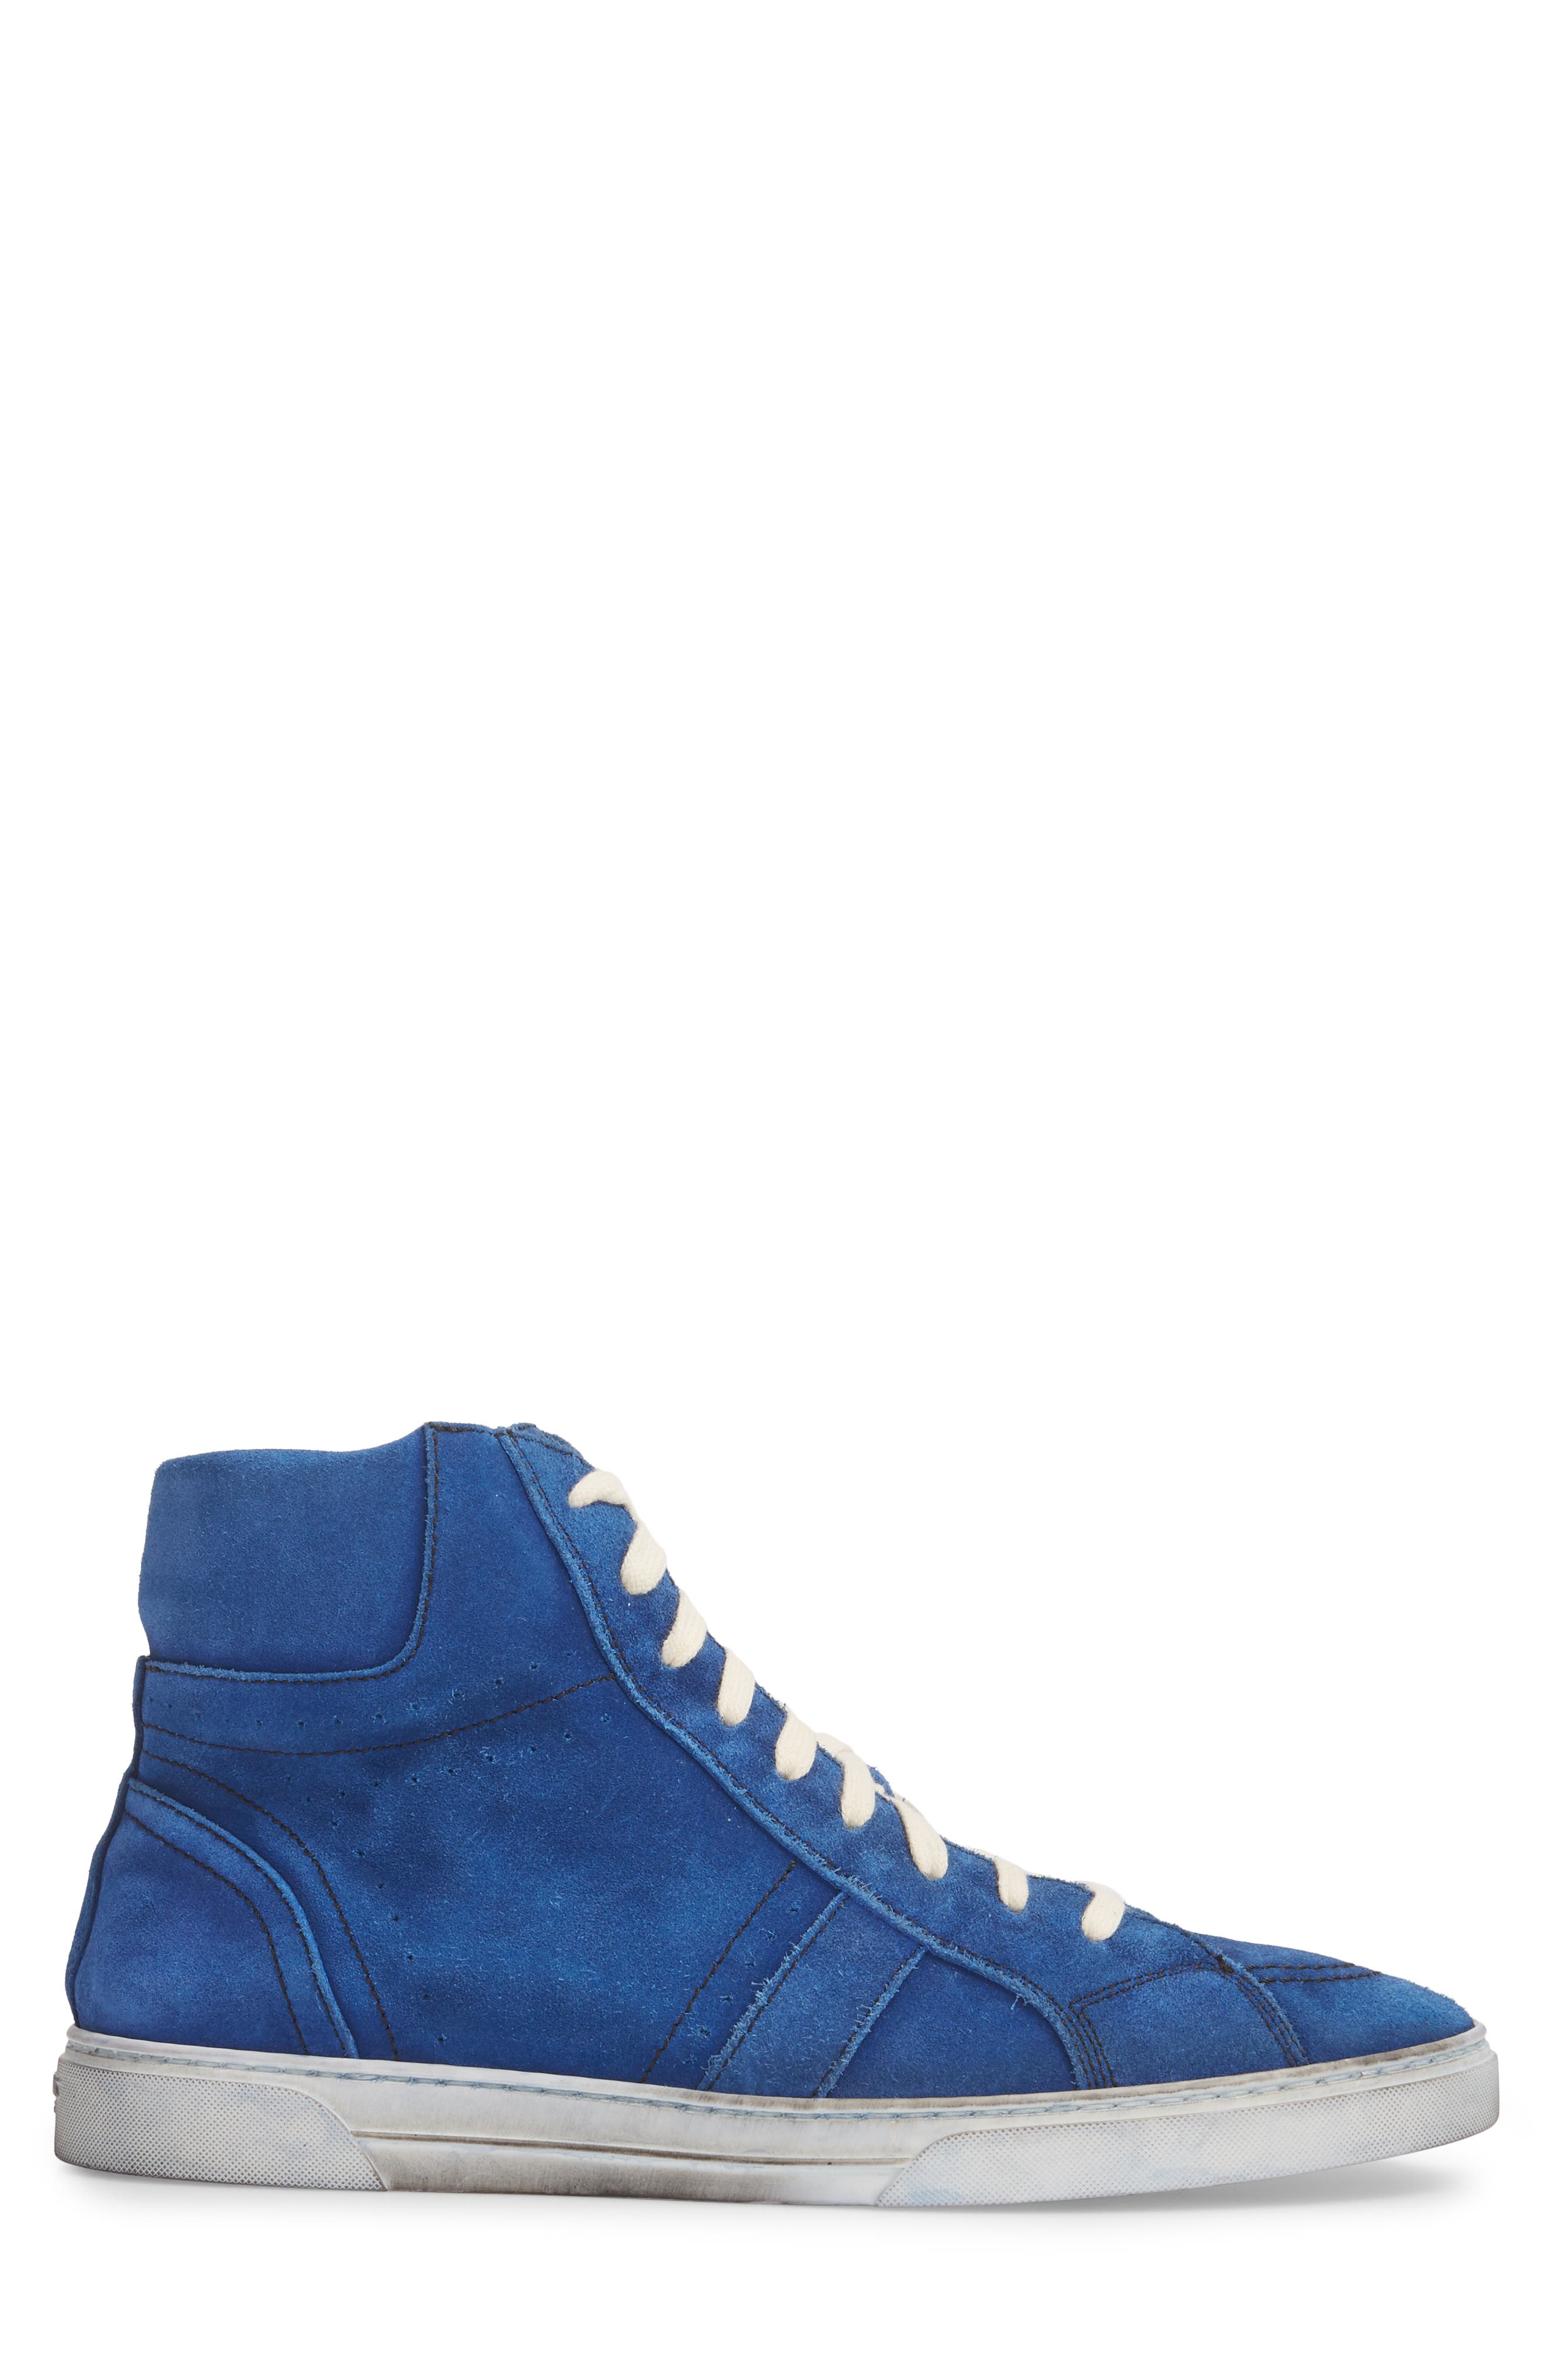 High Top Sneaker,                             Alternate thumbnail 3, color,                             Blue Suede